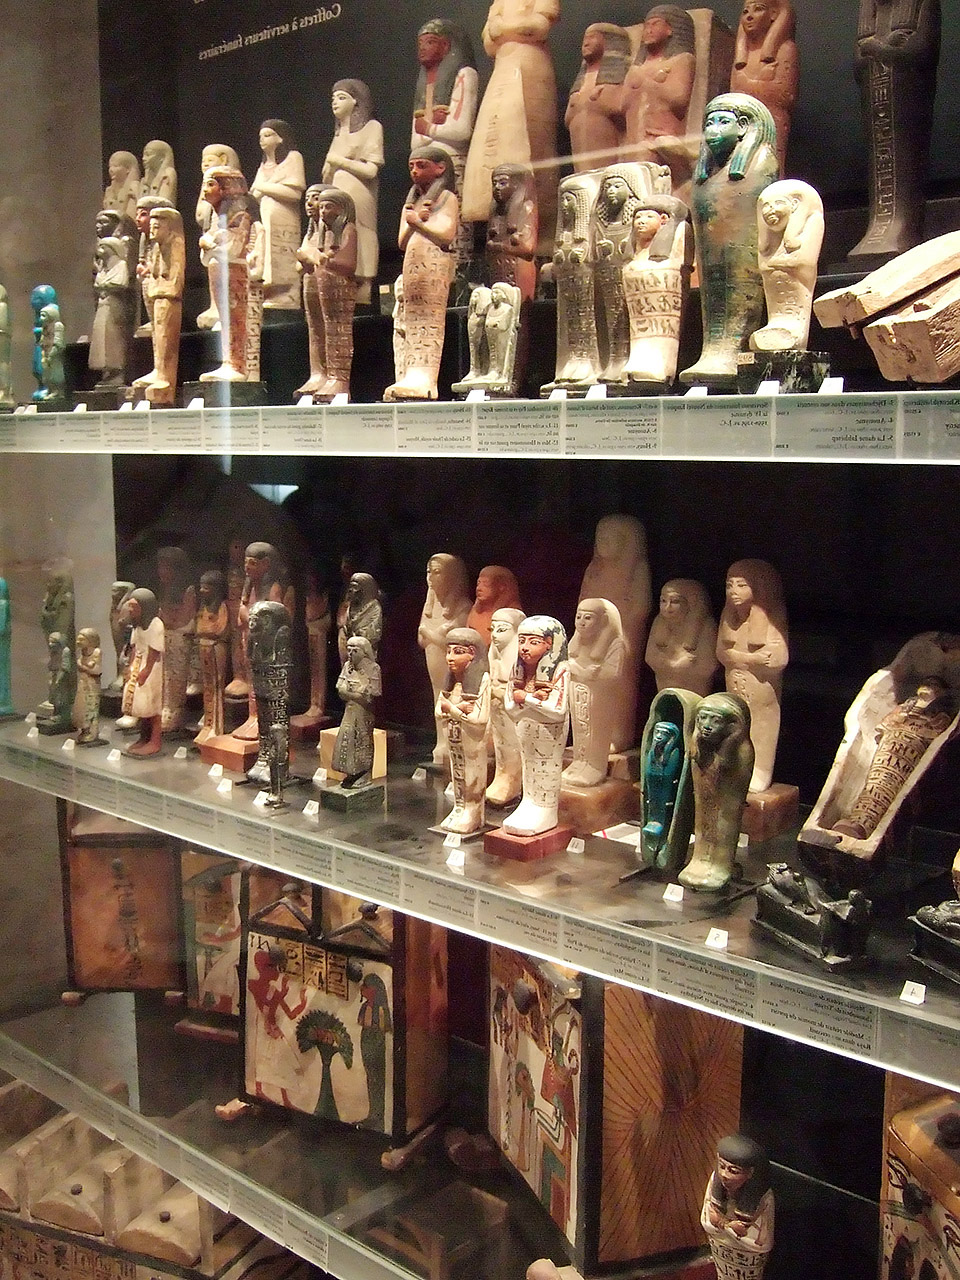 Funerary Practices throughout Civilizations